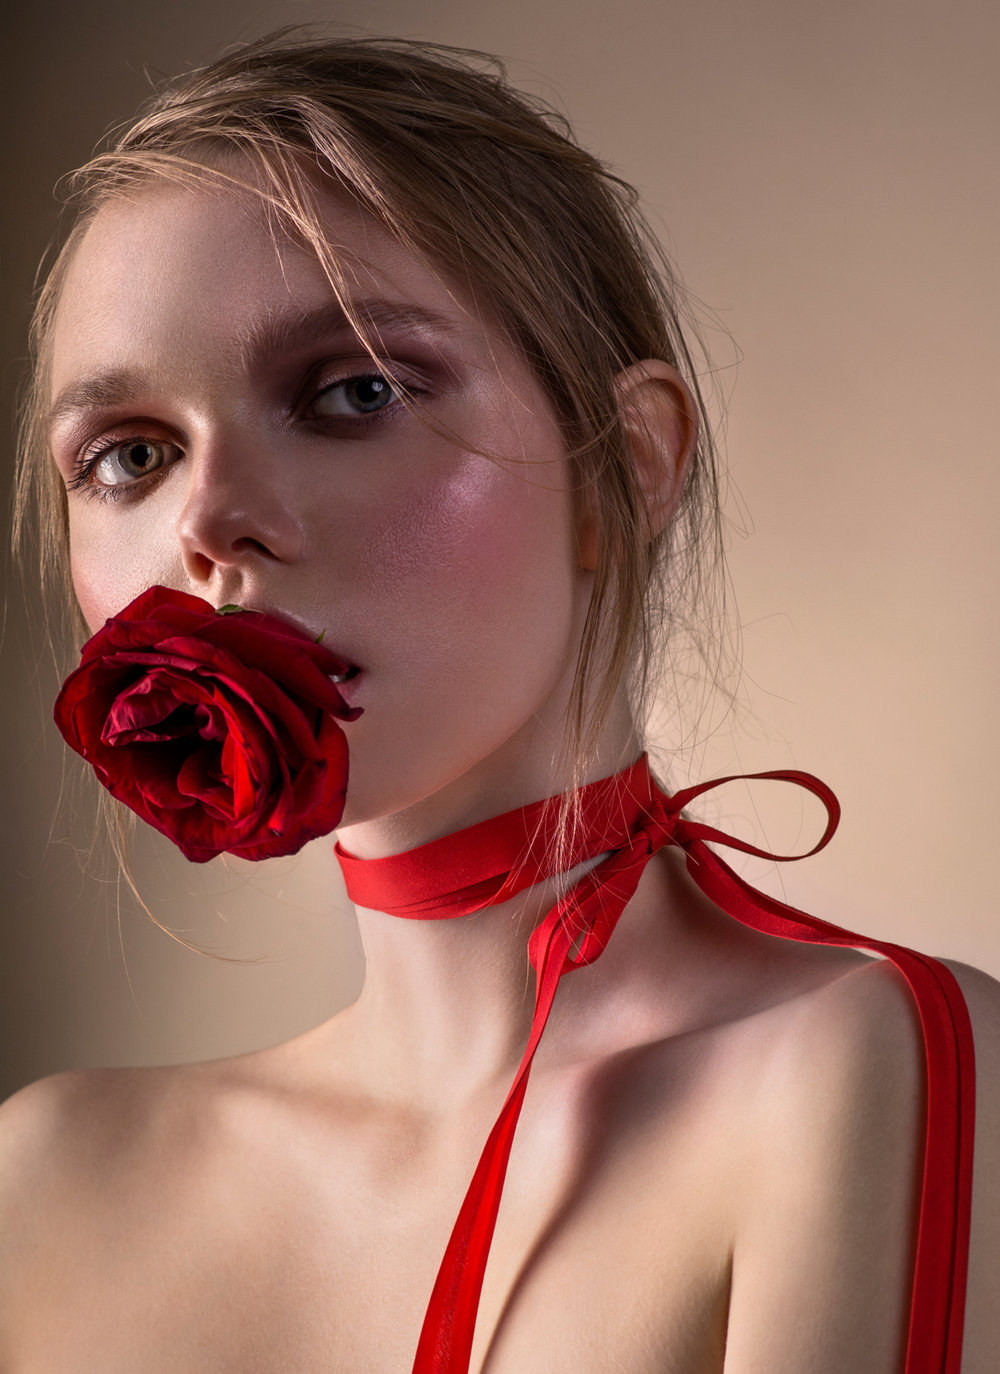 HEART ROSE - Photographer @anastasia_fashionphModel @sidelnikova_sonya  @donmodels_russiaMake-Up and Hair @nastya_usenkoStyling @kate_rahno